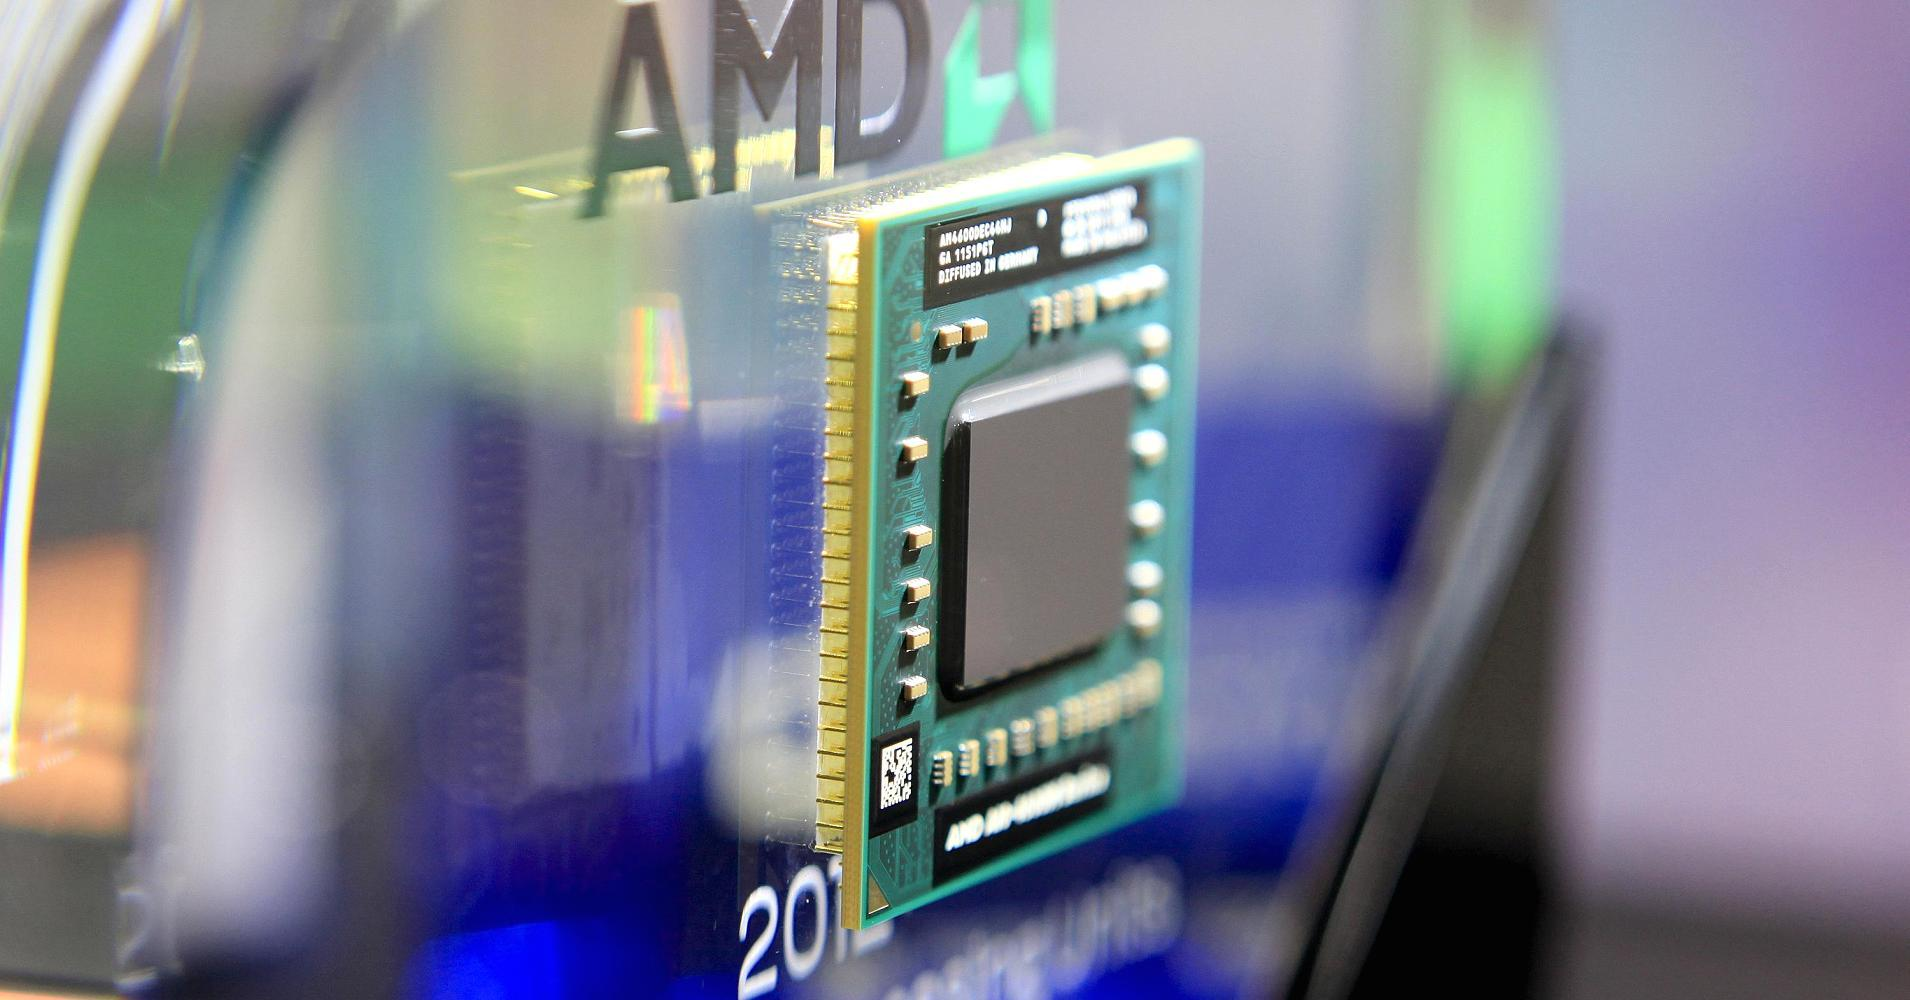 amd processors and chipsets reportedly riddled with new ryzenfall chimera and fallout security flaws 2